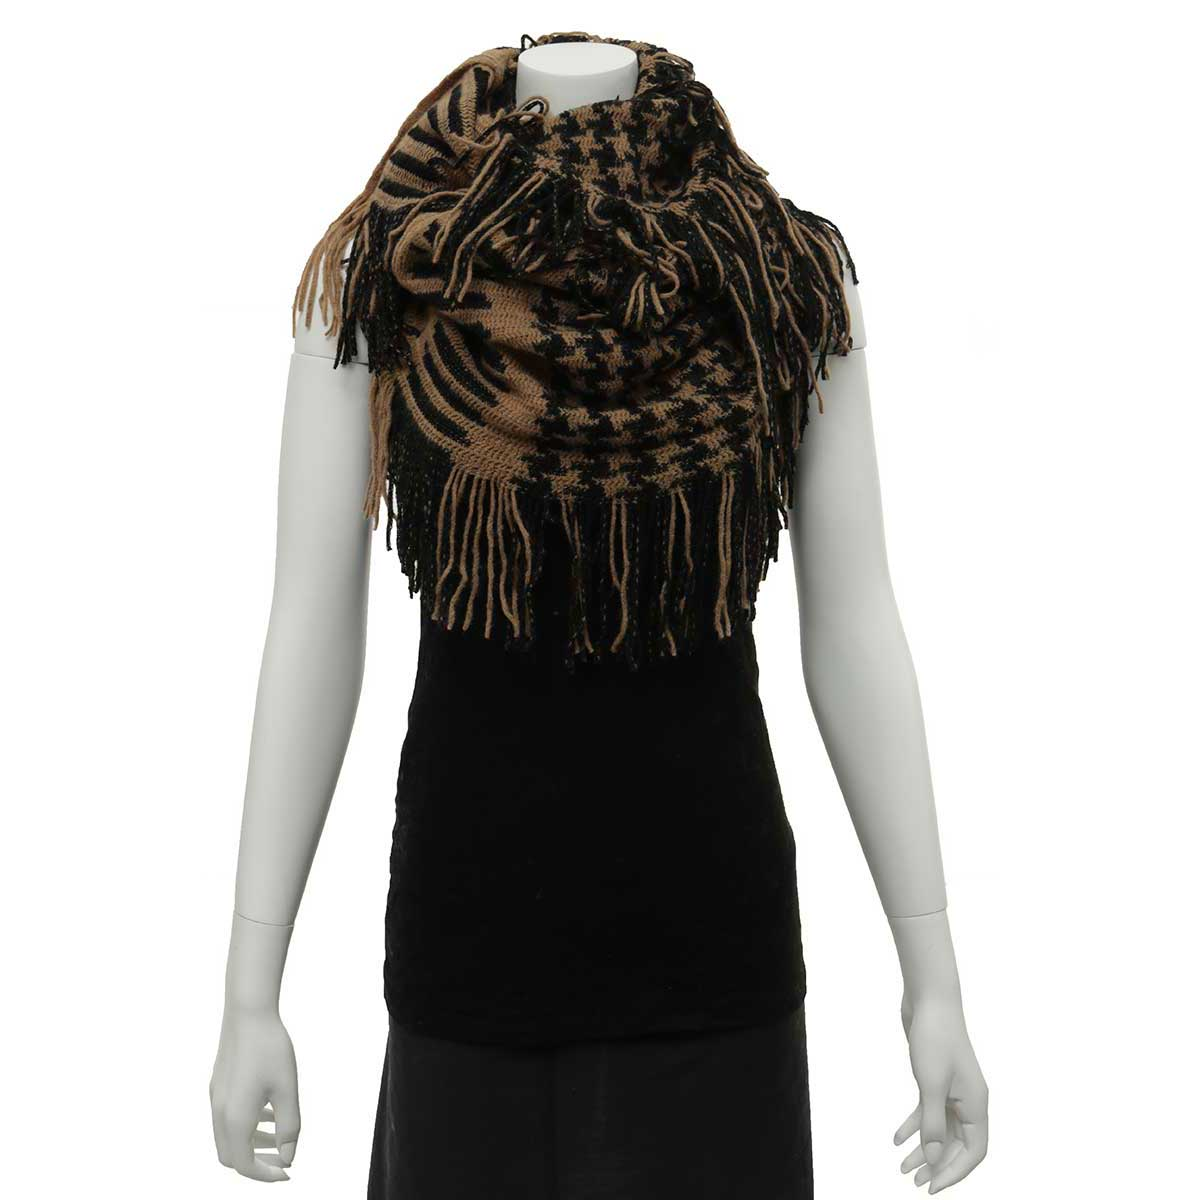 Black and Tan Herringbone Infinity Scarf with Fringe